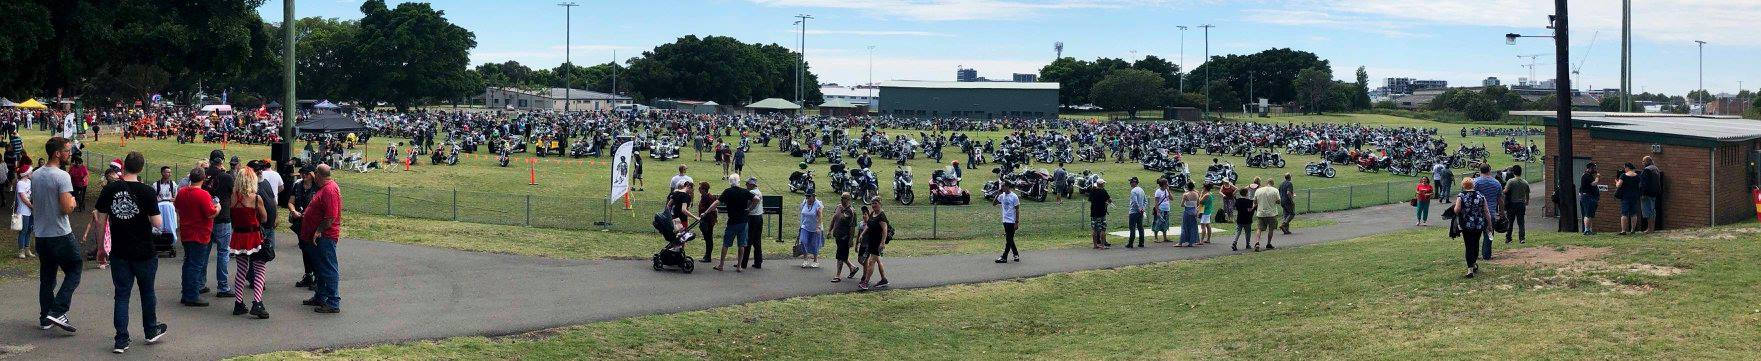 Field full of motorbikes at Newcastle Toy Run 2018